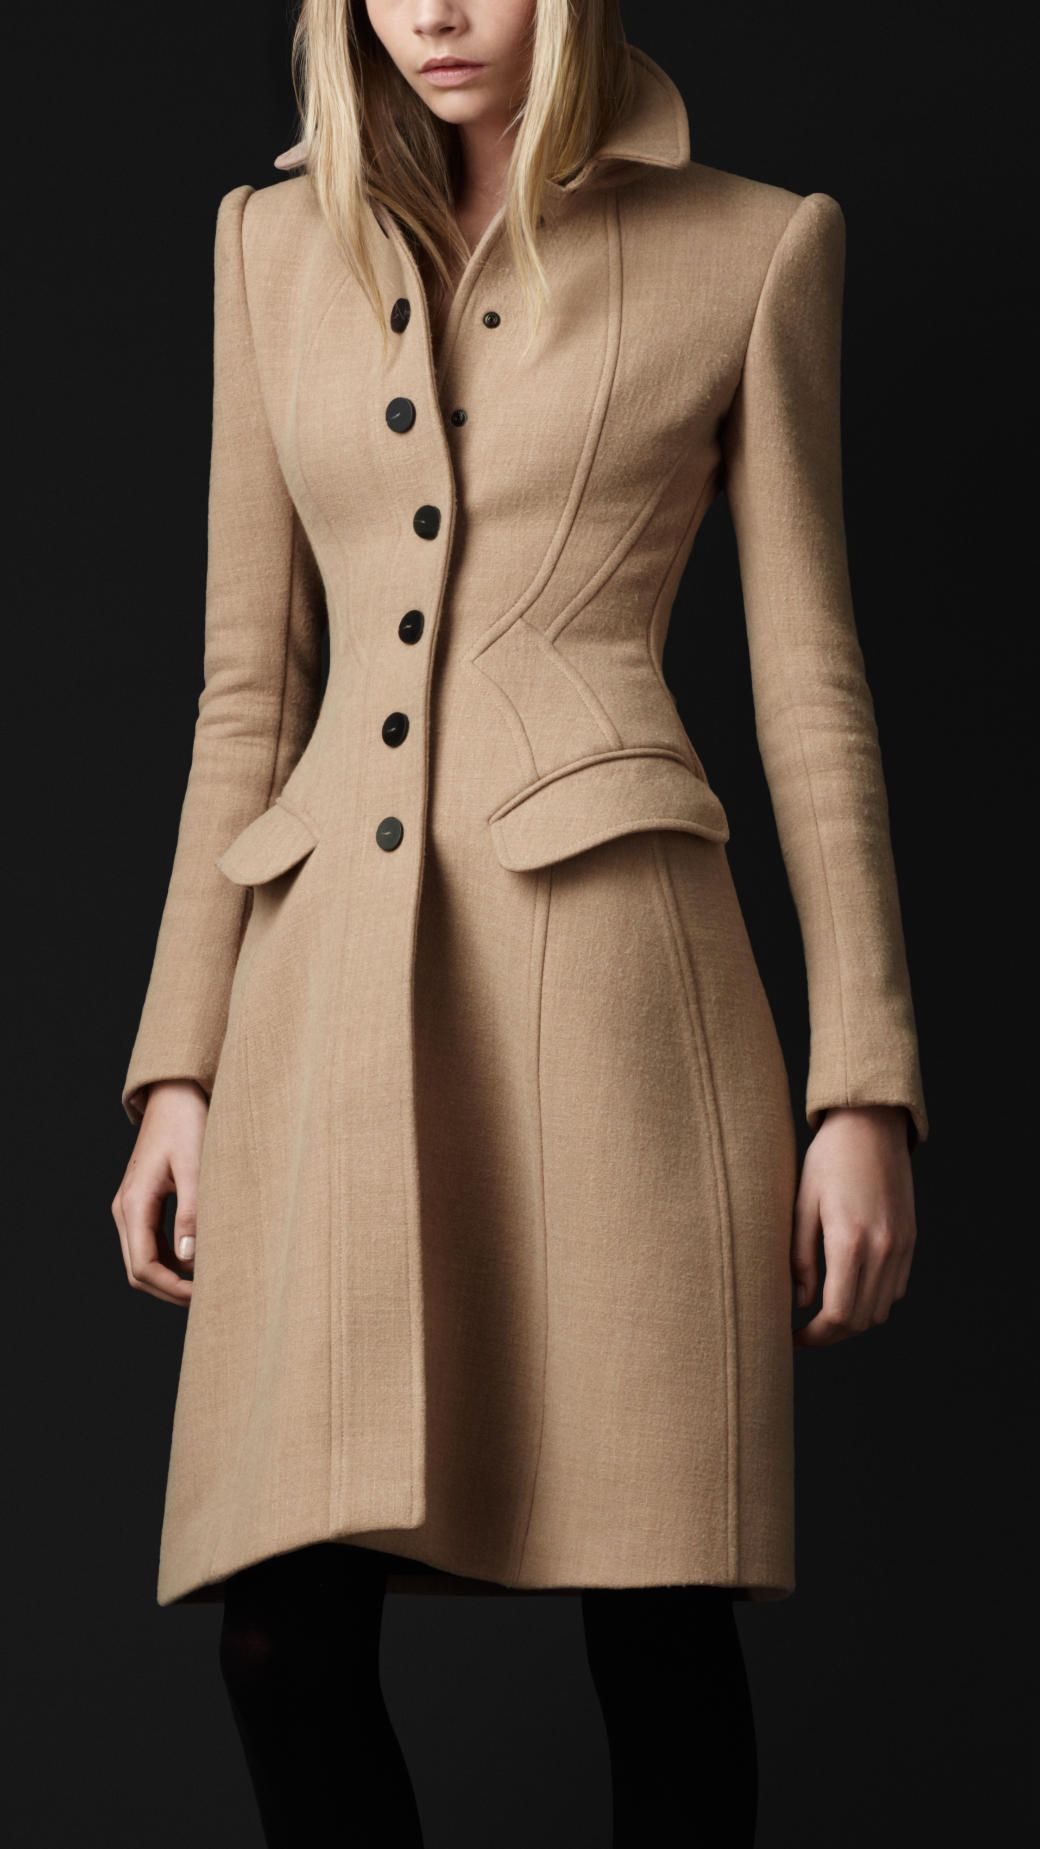 cd9e7ffdd66 Burberry prorsum Crêpe Wool Tailored Coat in Beige (fudge)